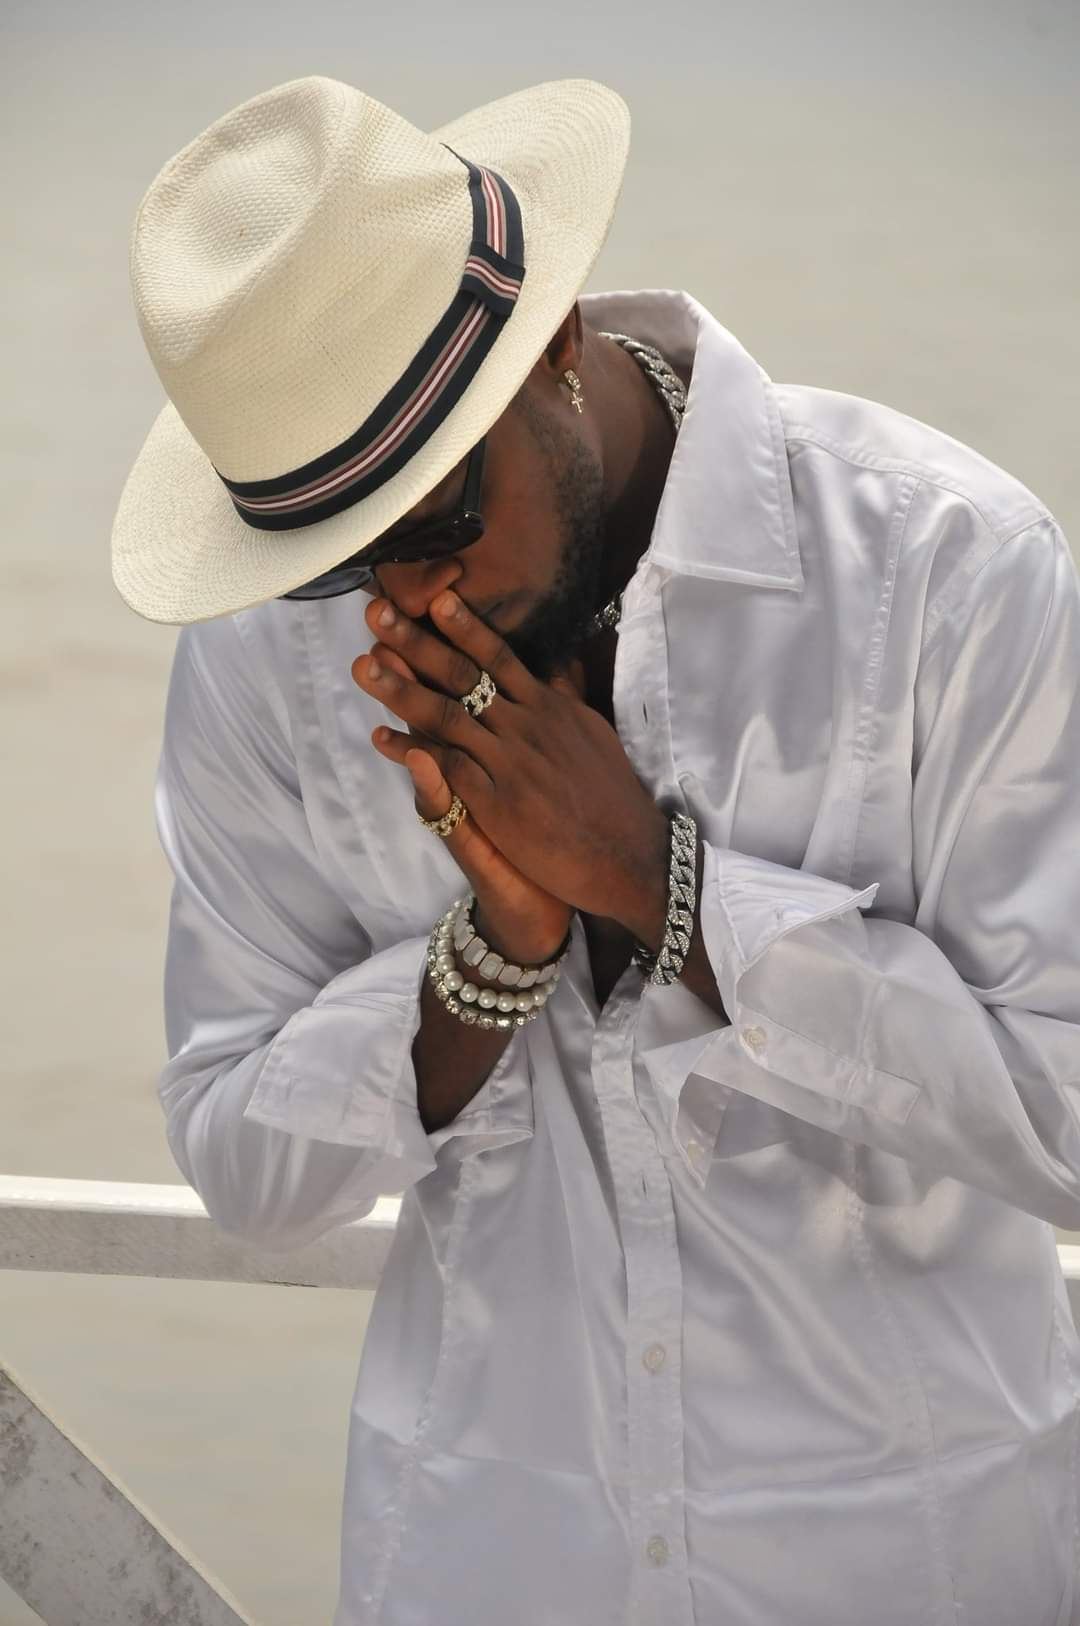 Salatiel, Cameroonian artist and music producer